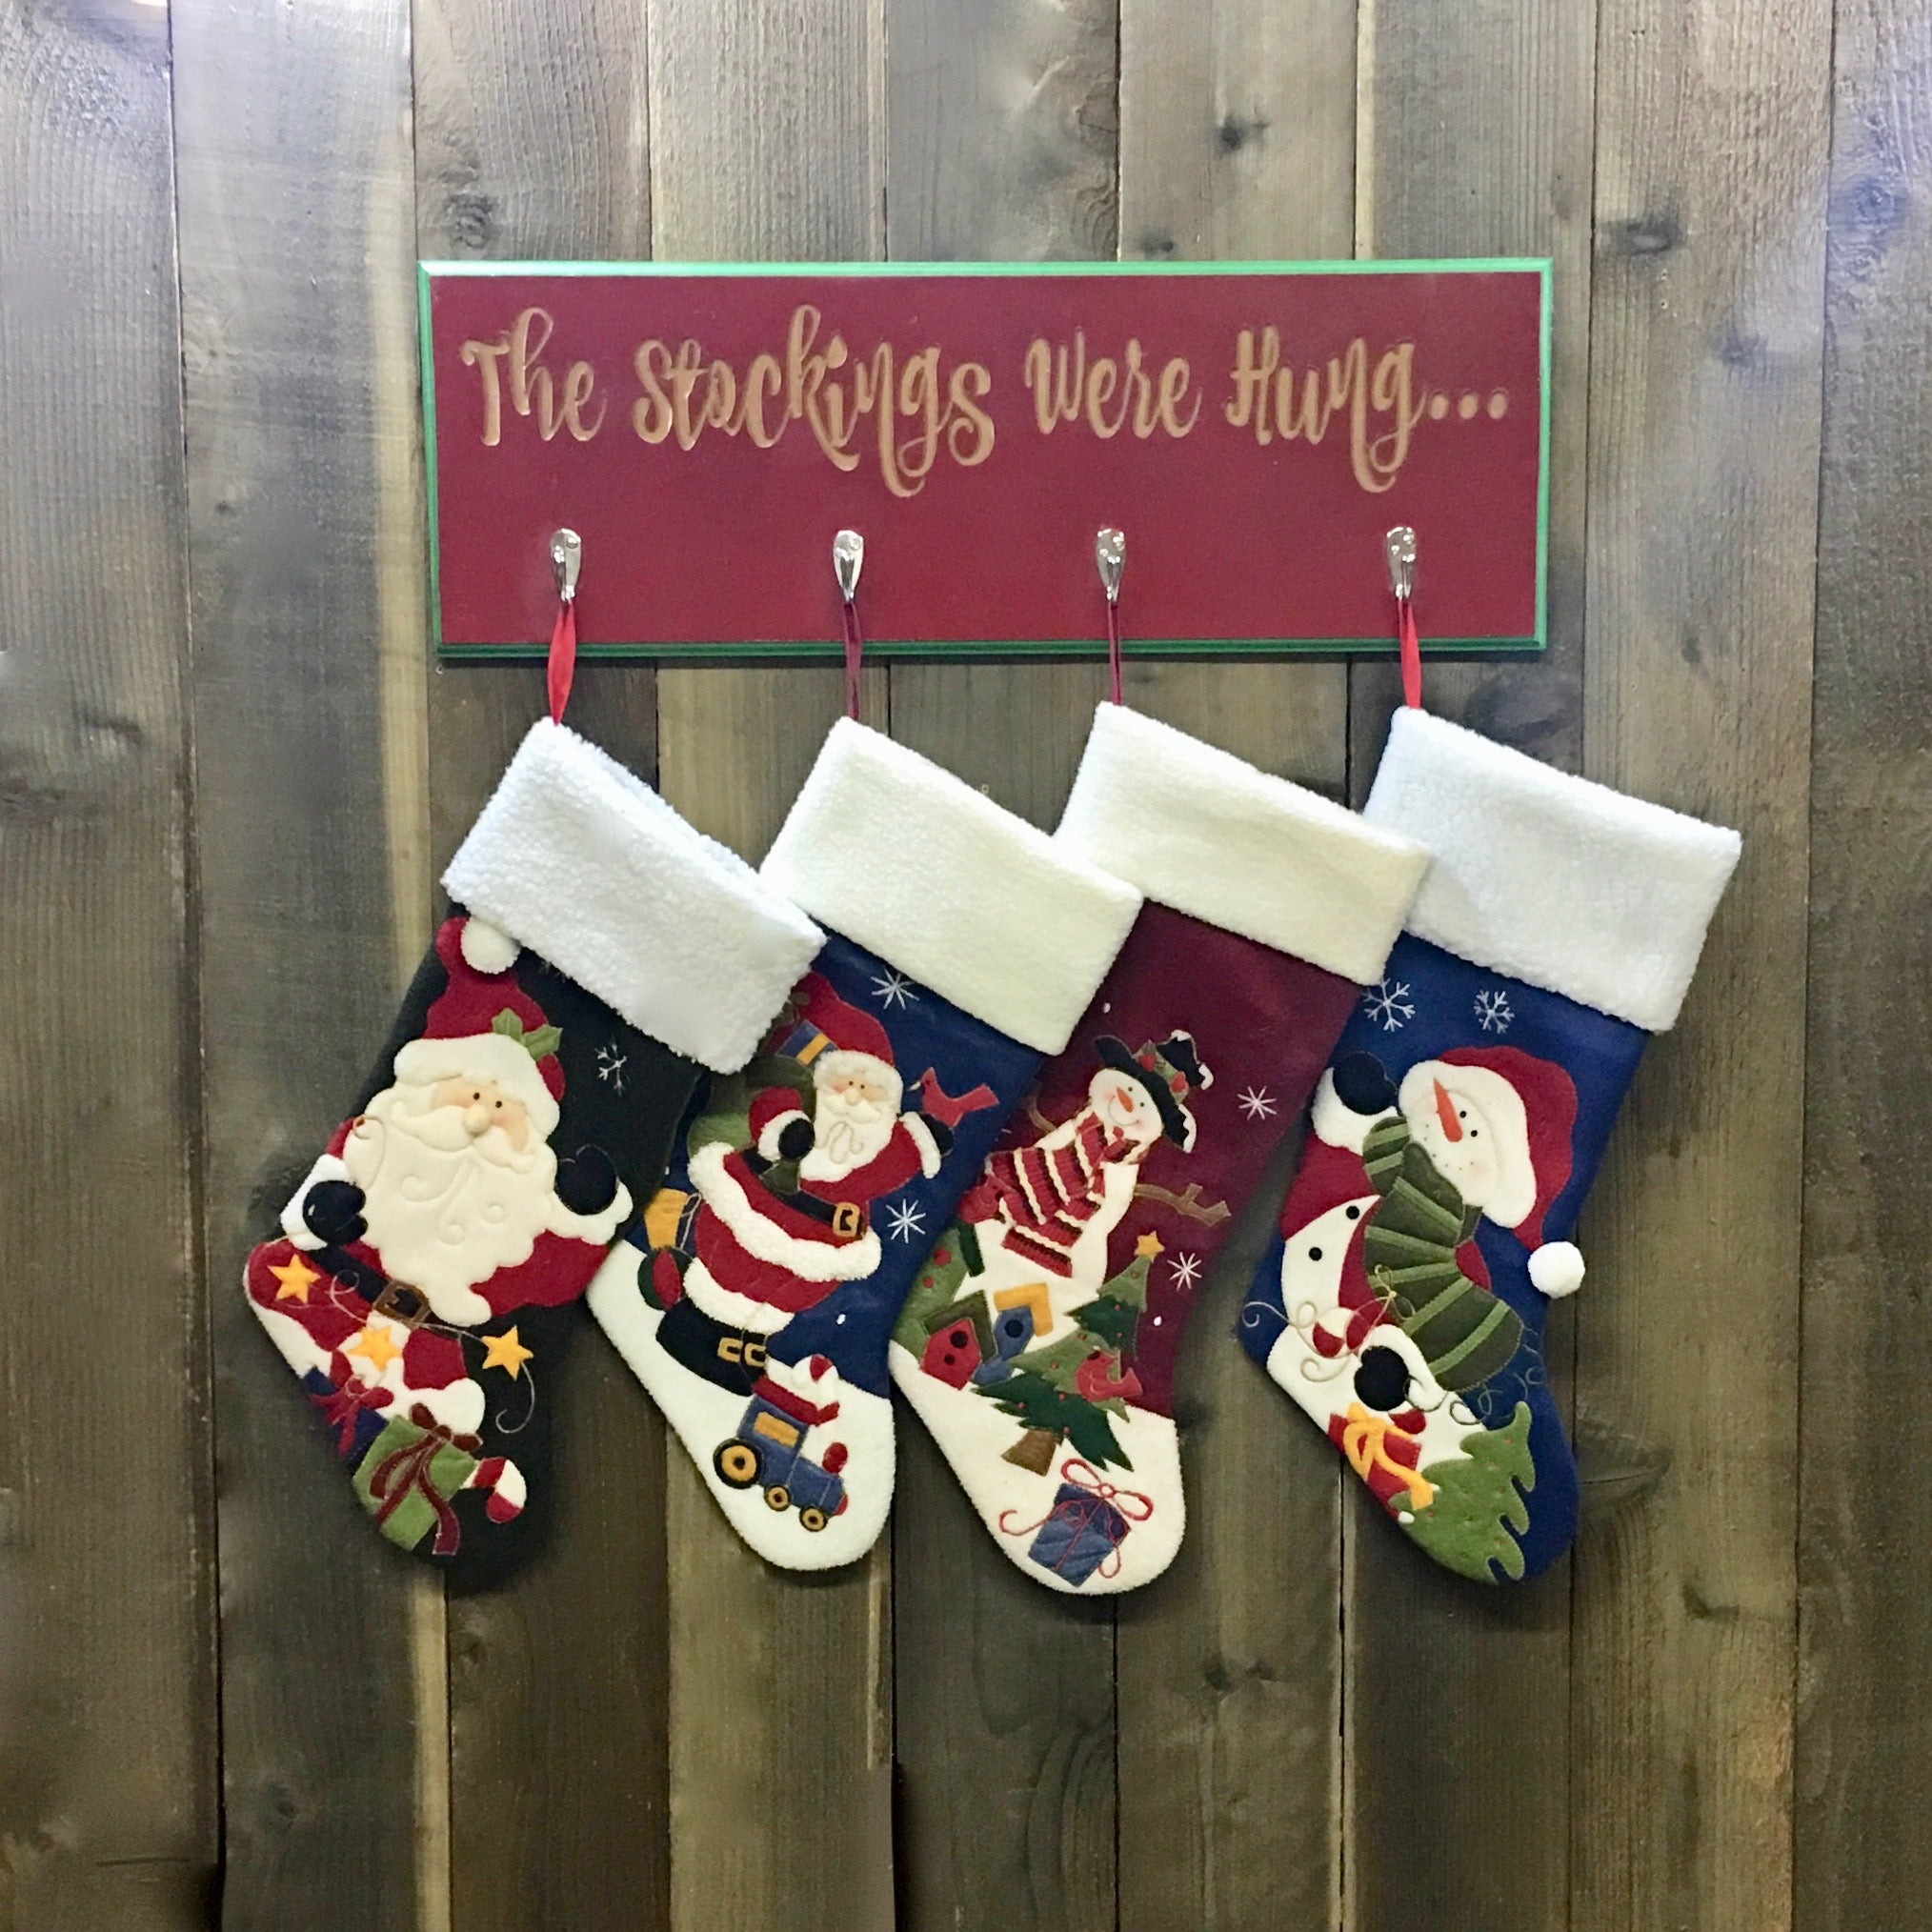 The Stockings Were Hung - Christmas Stocking Hanger - Carved MDF Wood